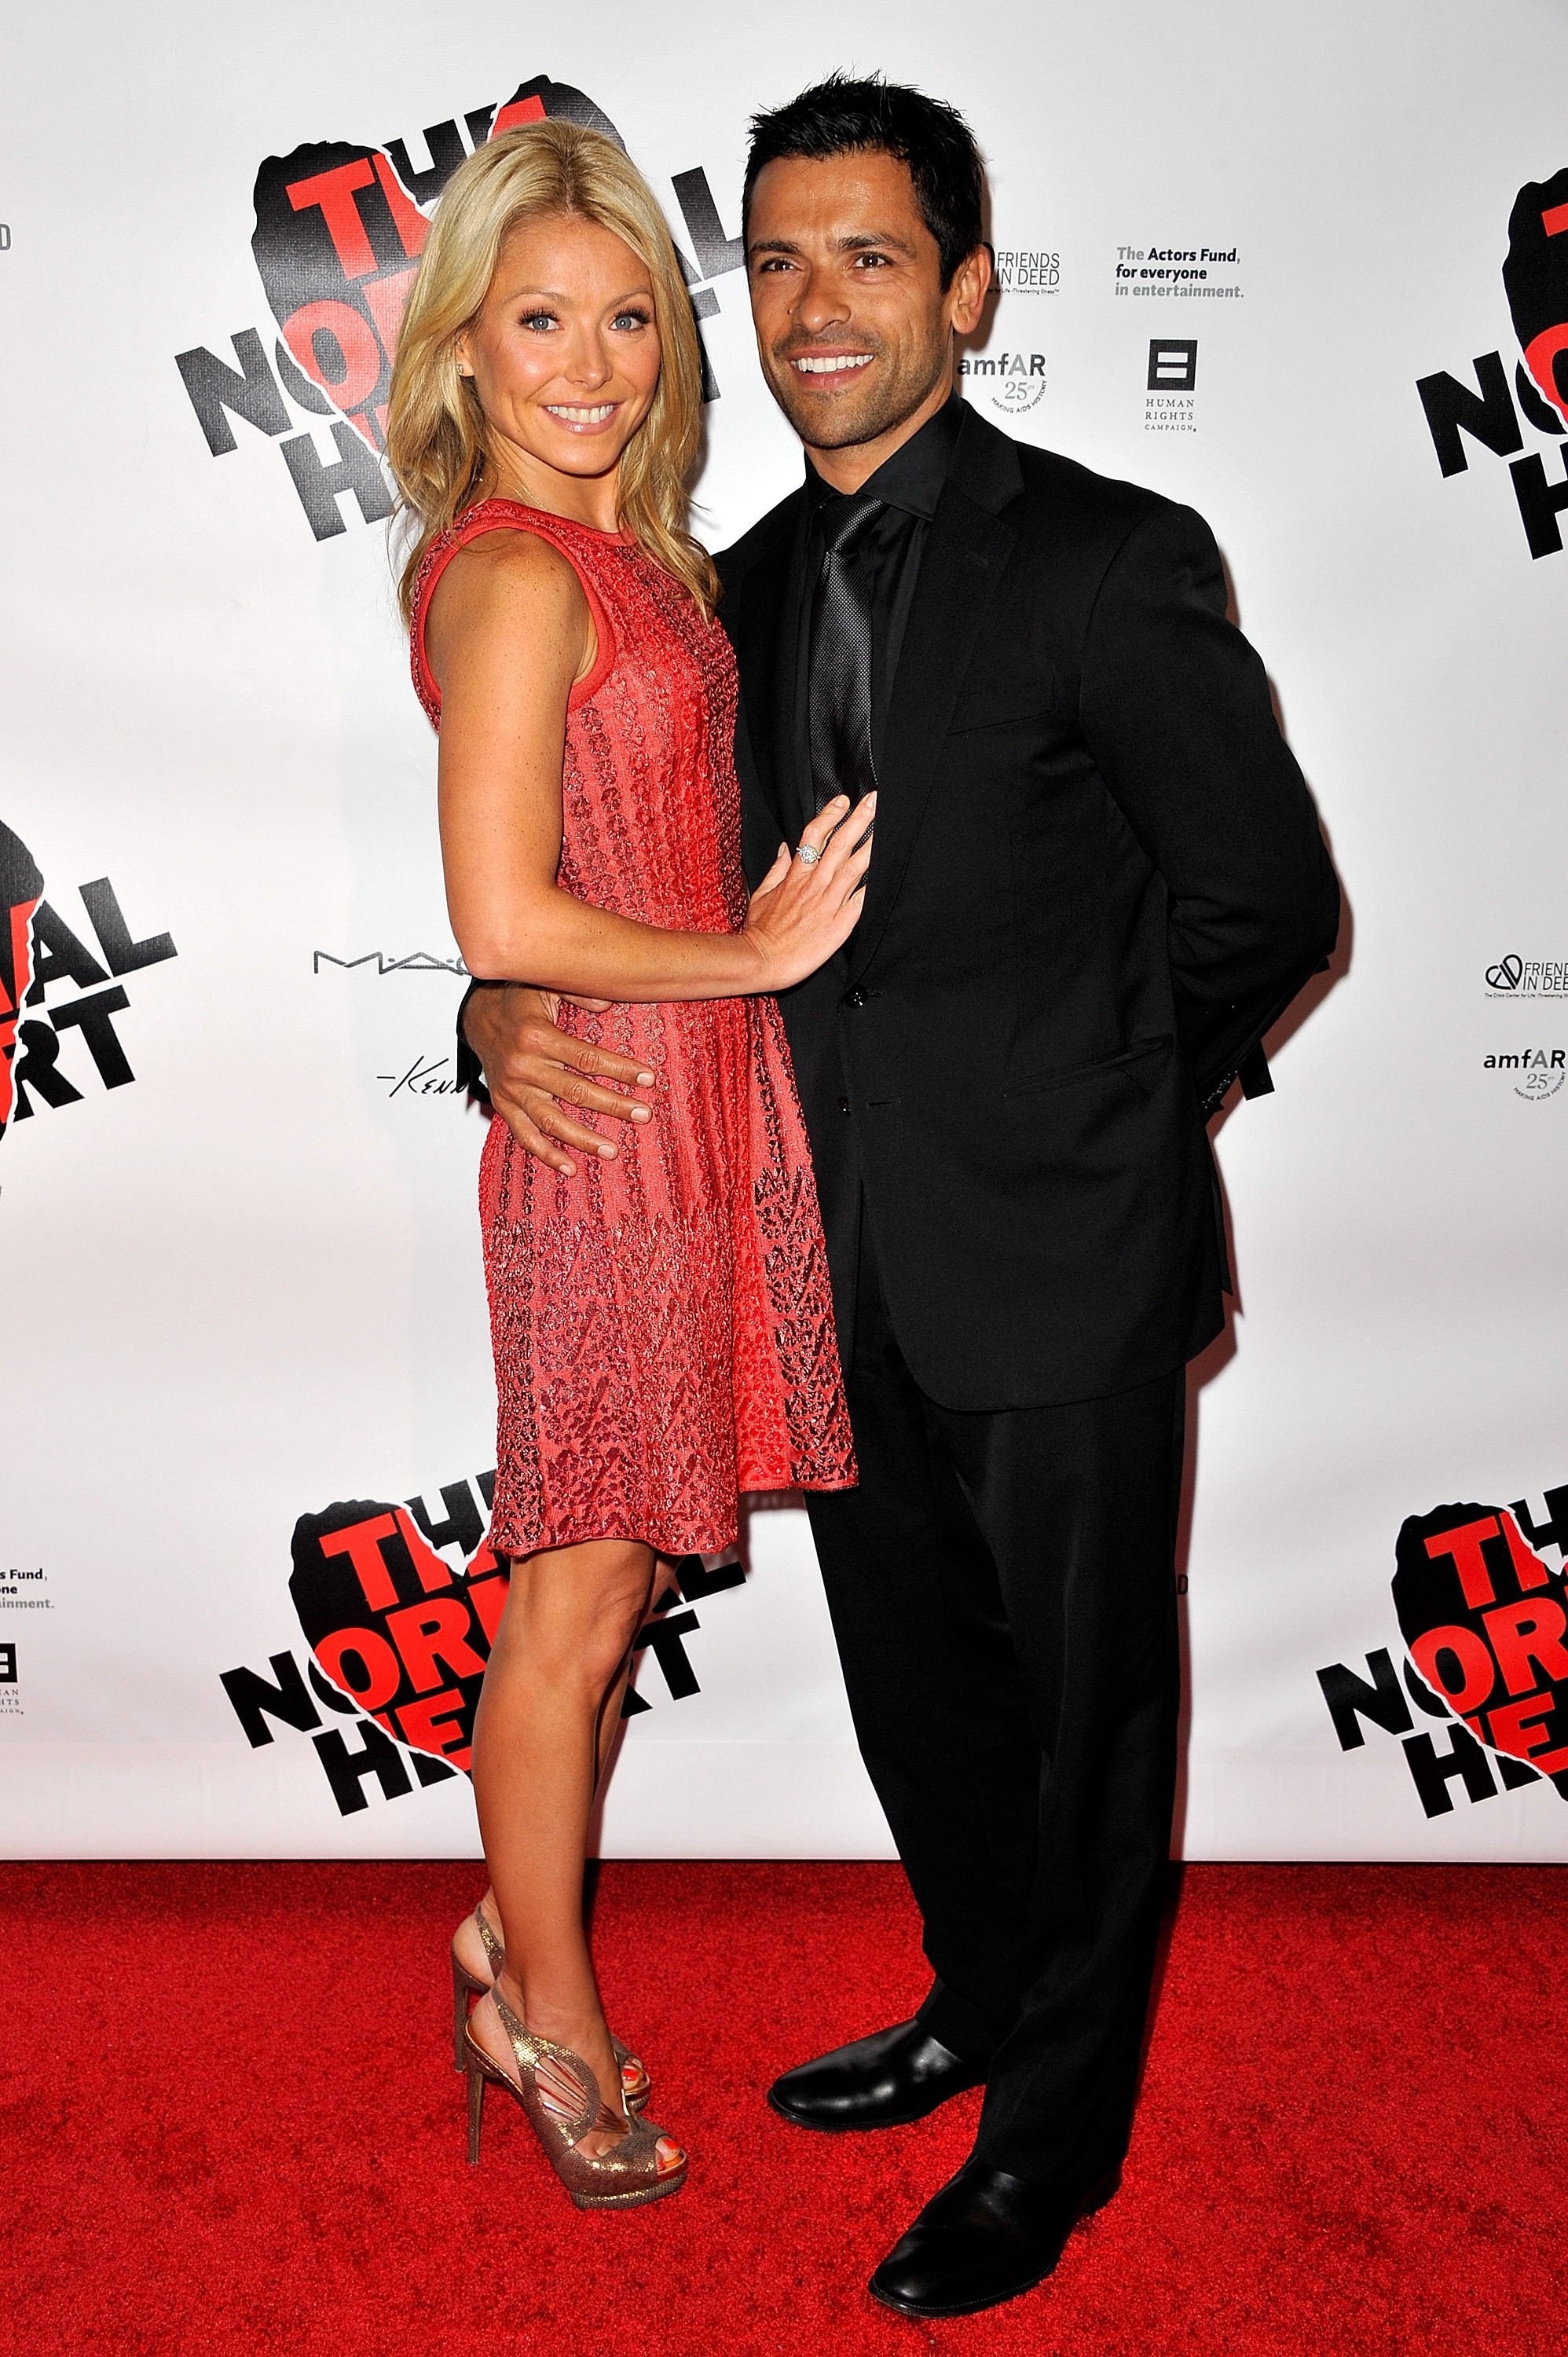 """Kelly Ripa and Mark Consuelos at the Broadway opening night of """"The Normal Heart"""" on April 27, 2011, in New York City. 